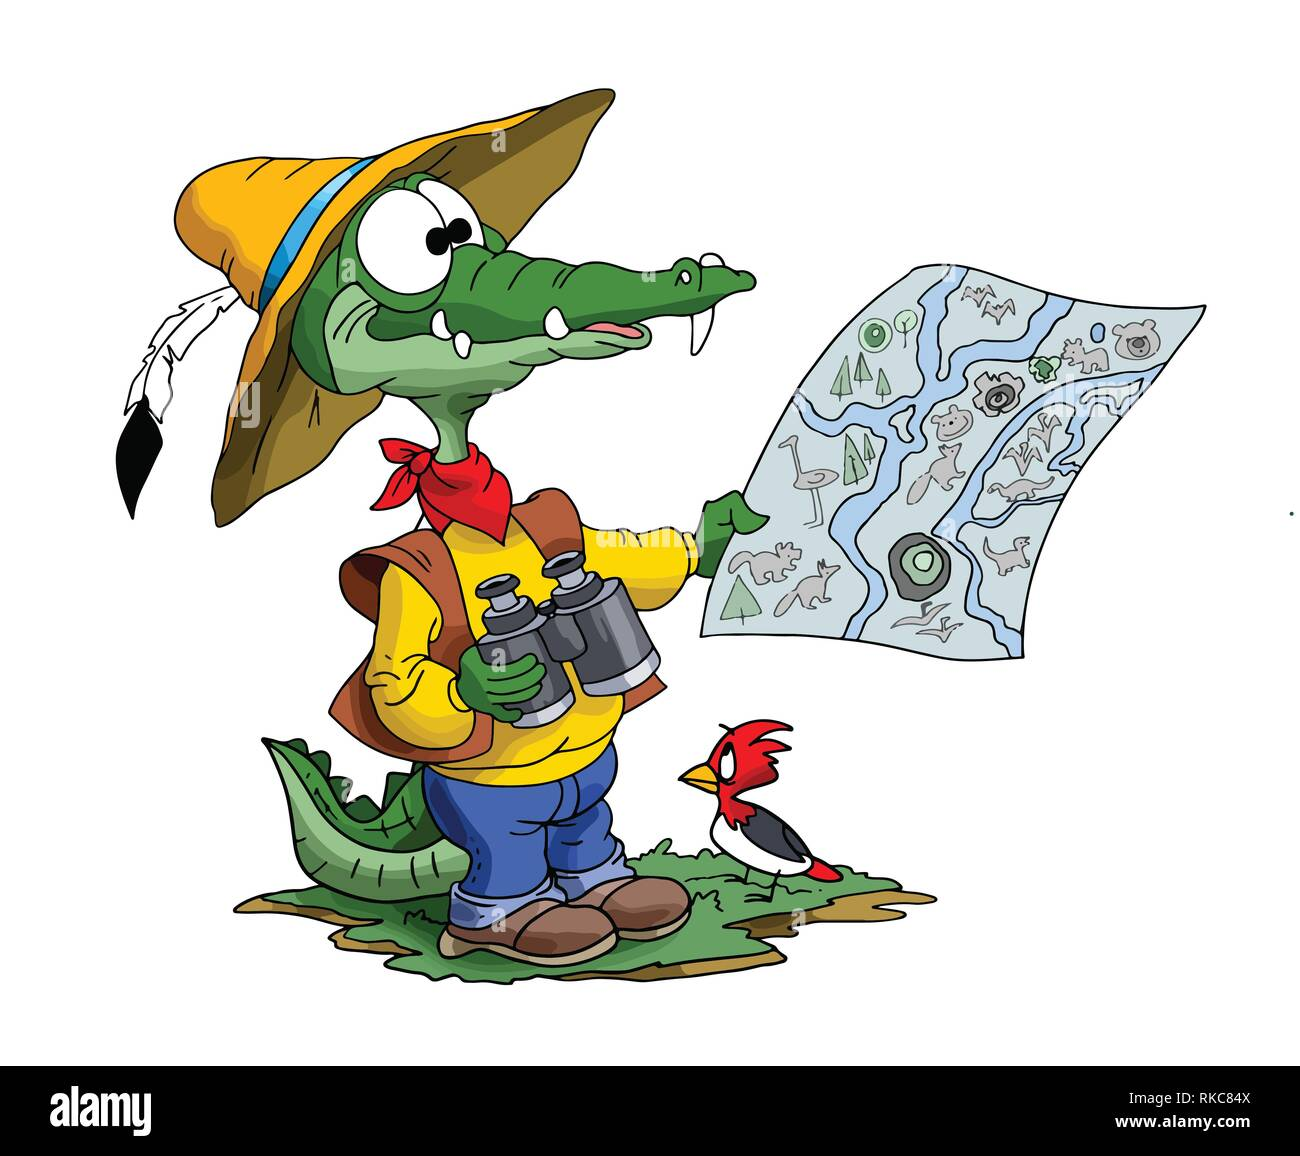 Cartoon adventurer alligator looking his map to find his route vector illustration - Stock Image